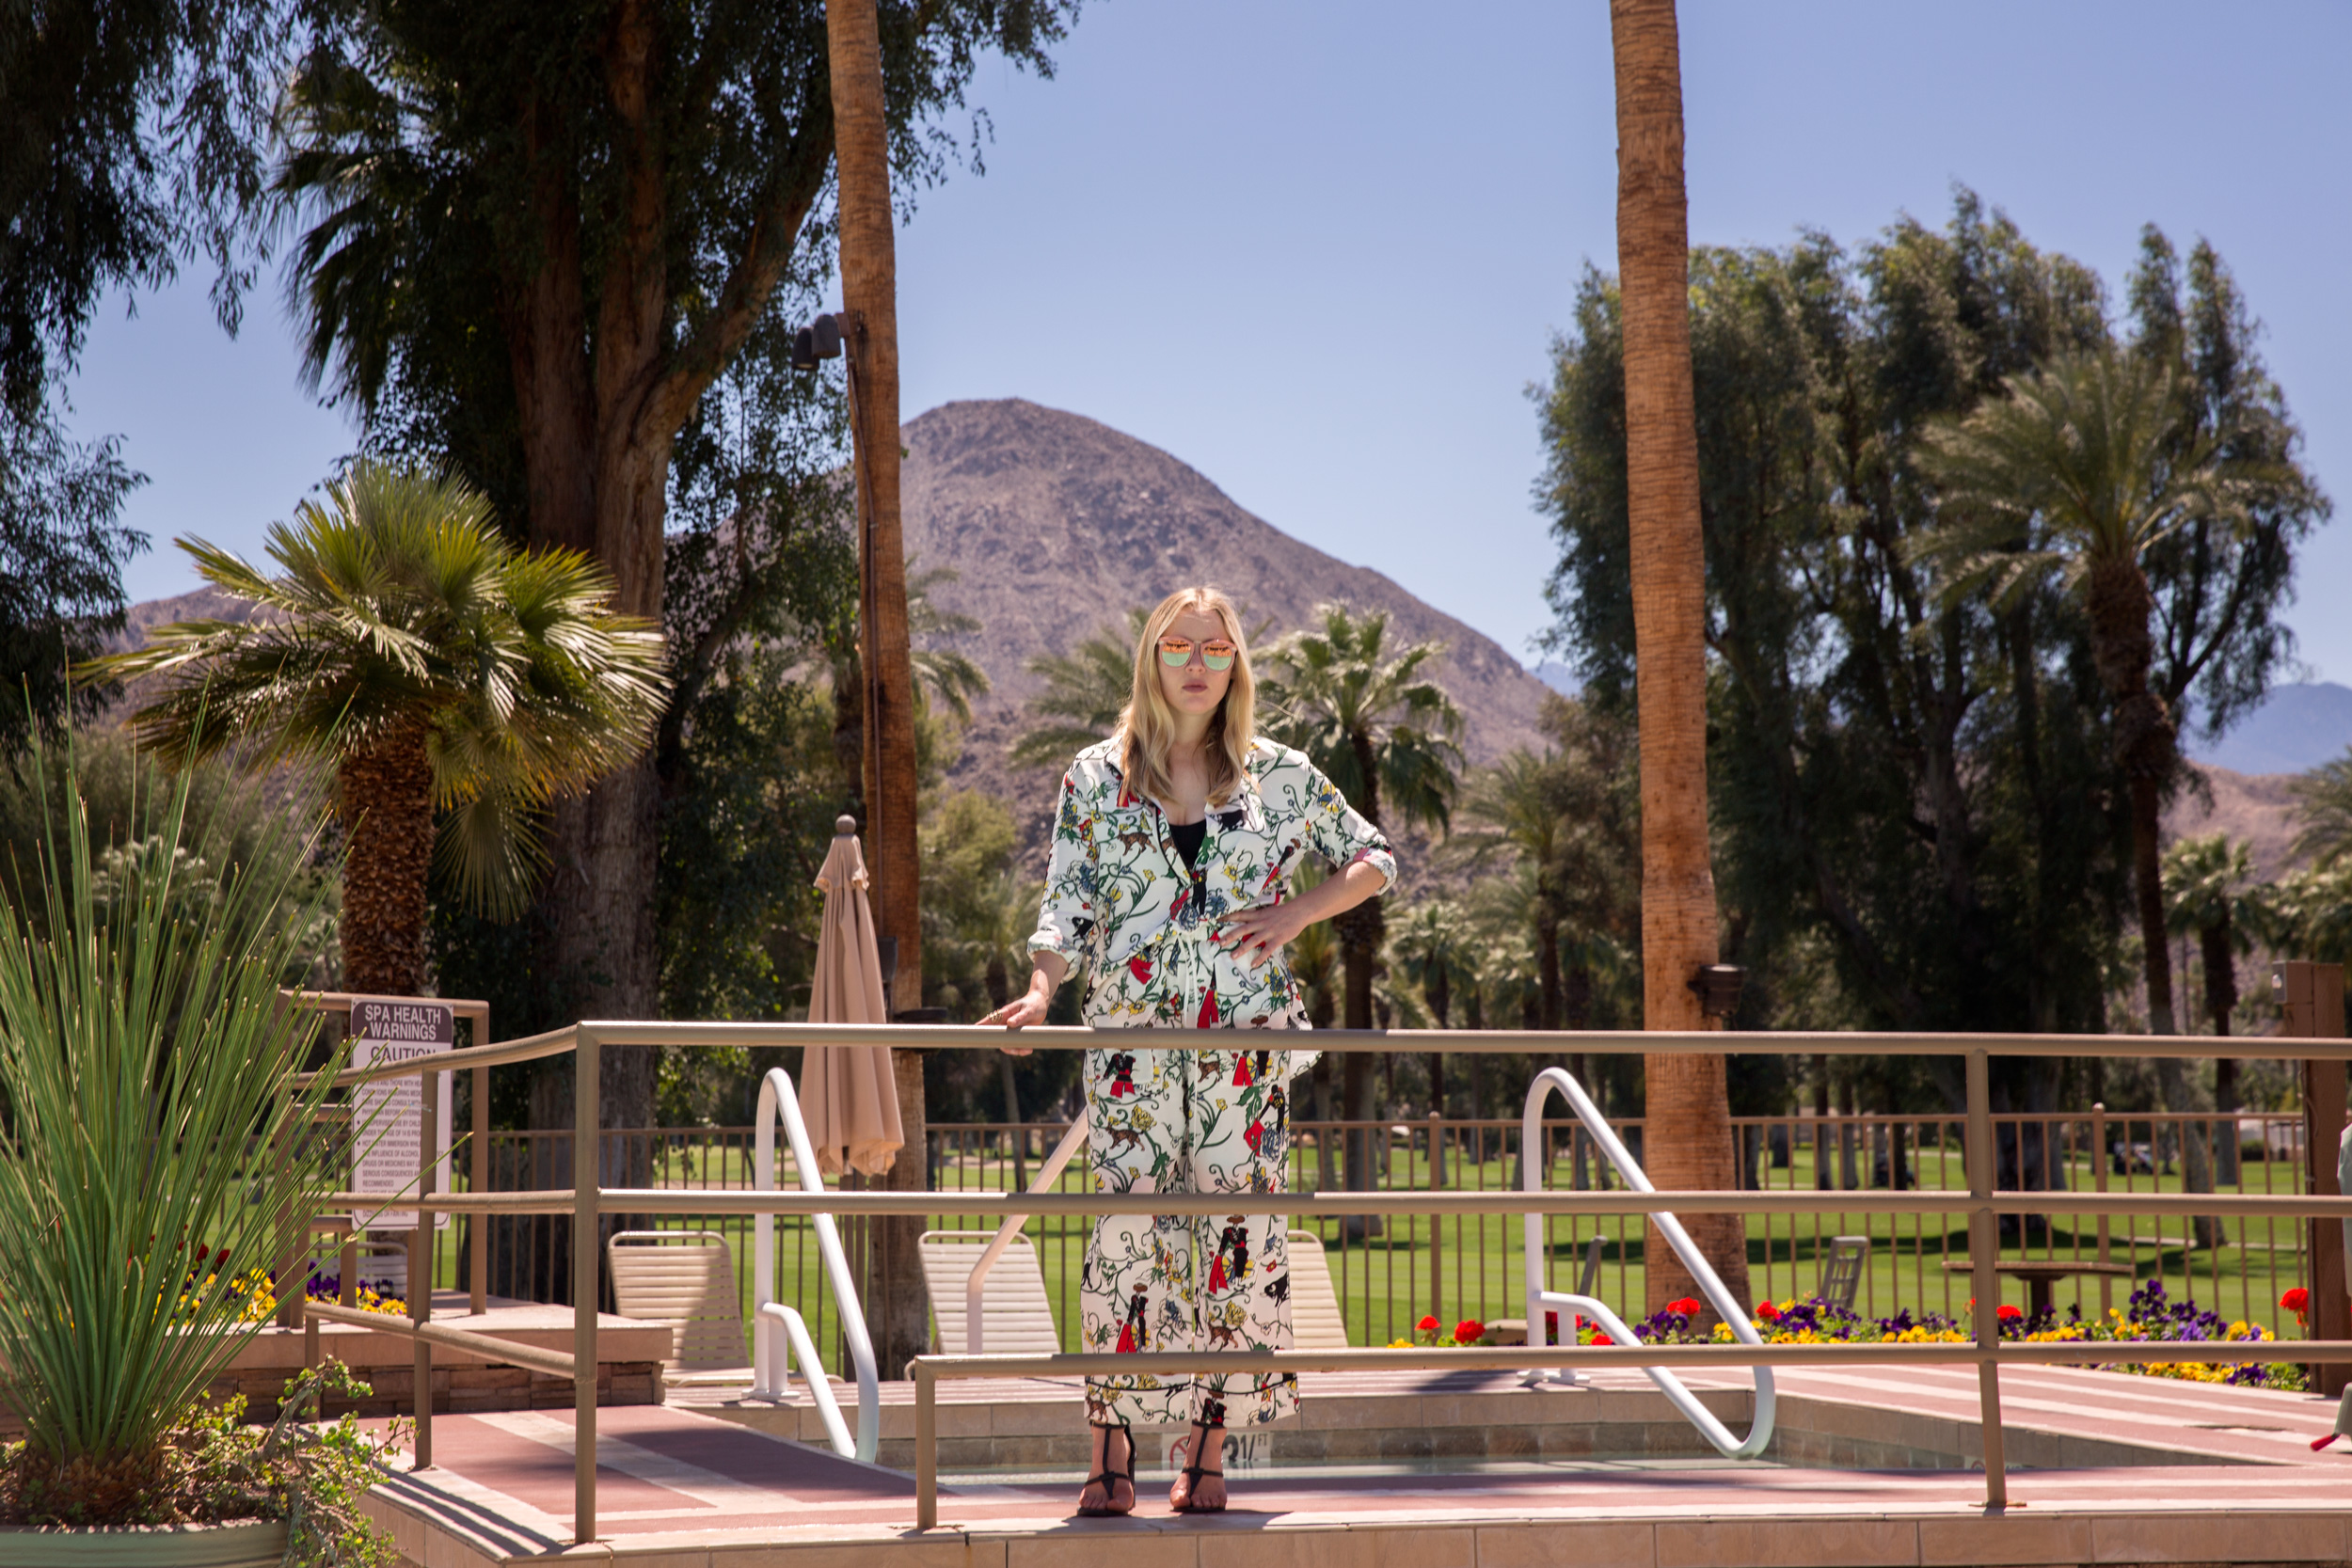 Misty Boyce performed on keyboard and vocals with BØRNS on the Mojave Stage at Coachella. She brings a trucker hat with her on tour. 'It's my little security blanket. I feel like I'm protected somehow,' says Ms. Boyce.